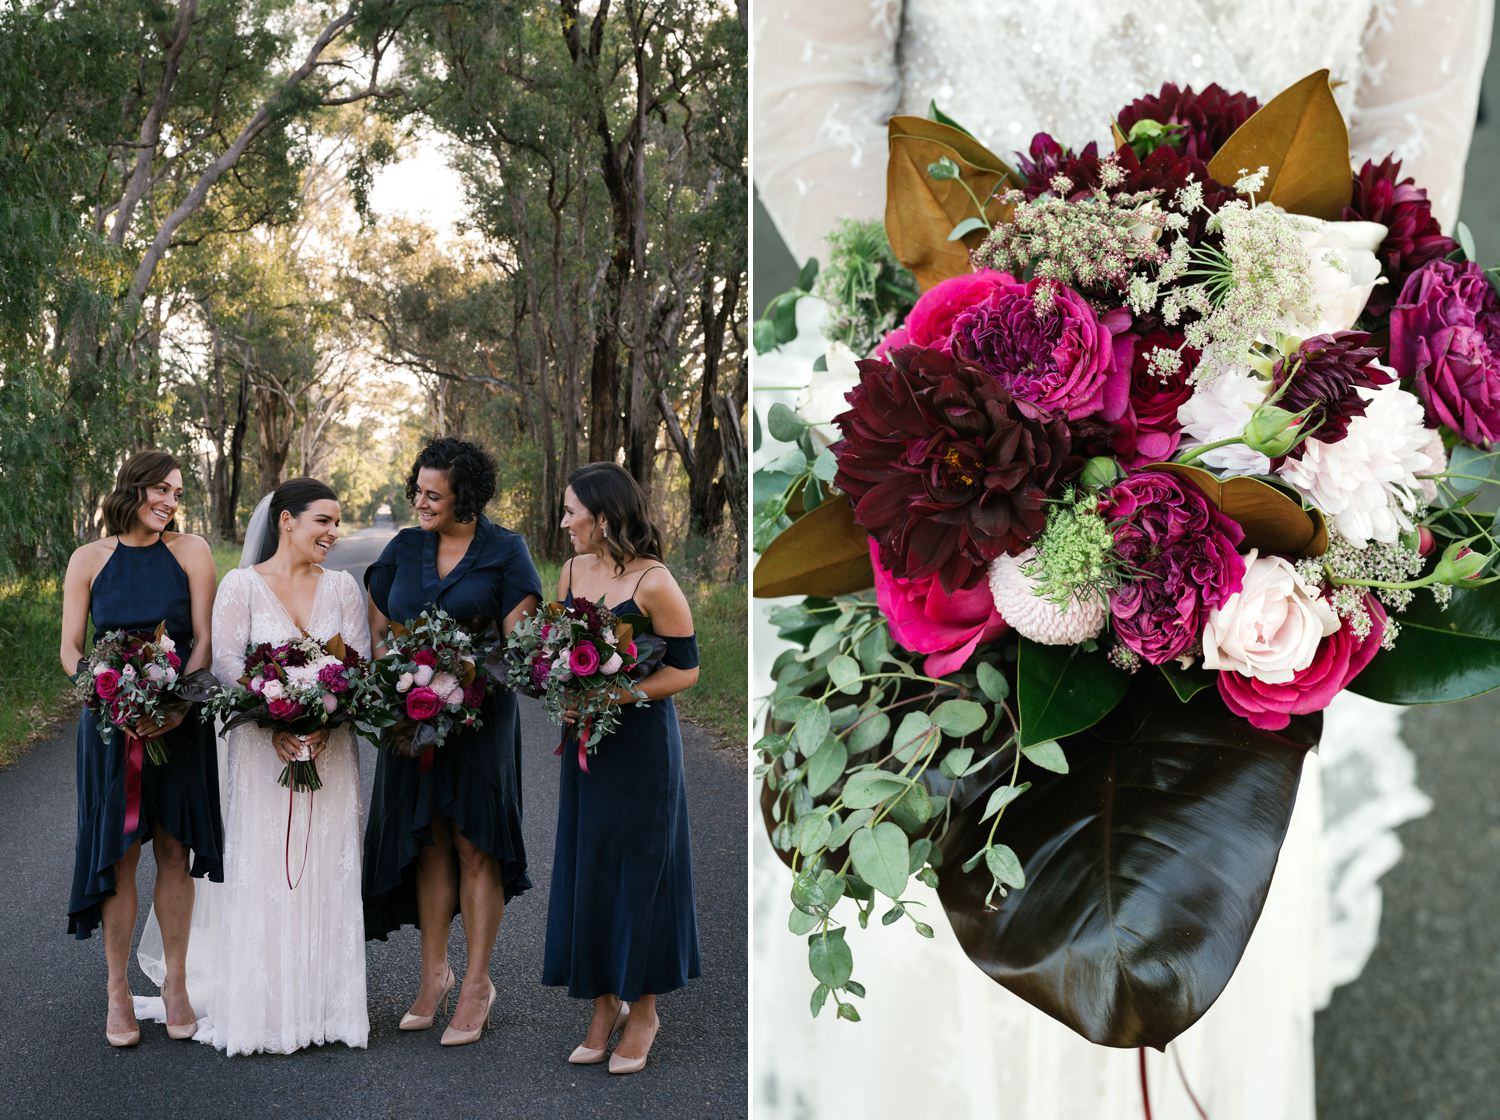 sarah jared the vinegrove mudgee canberra wedding photographer erin latimore 77.jpg